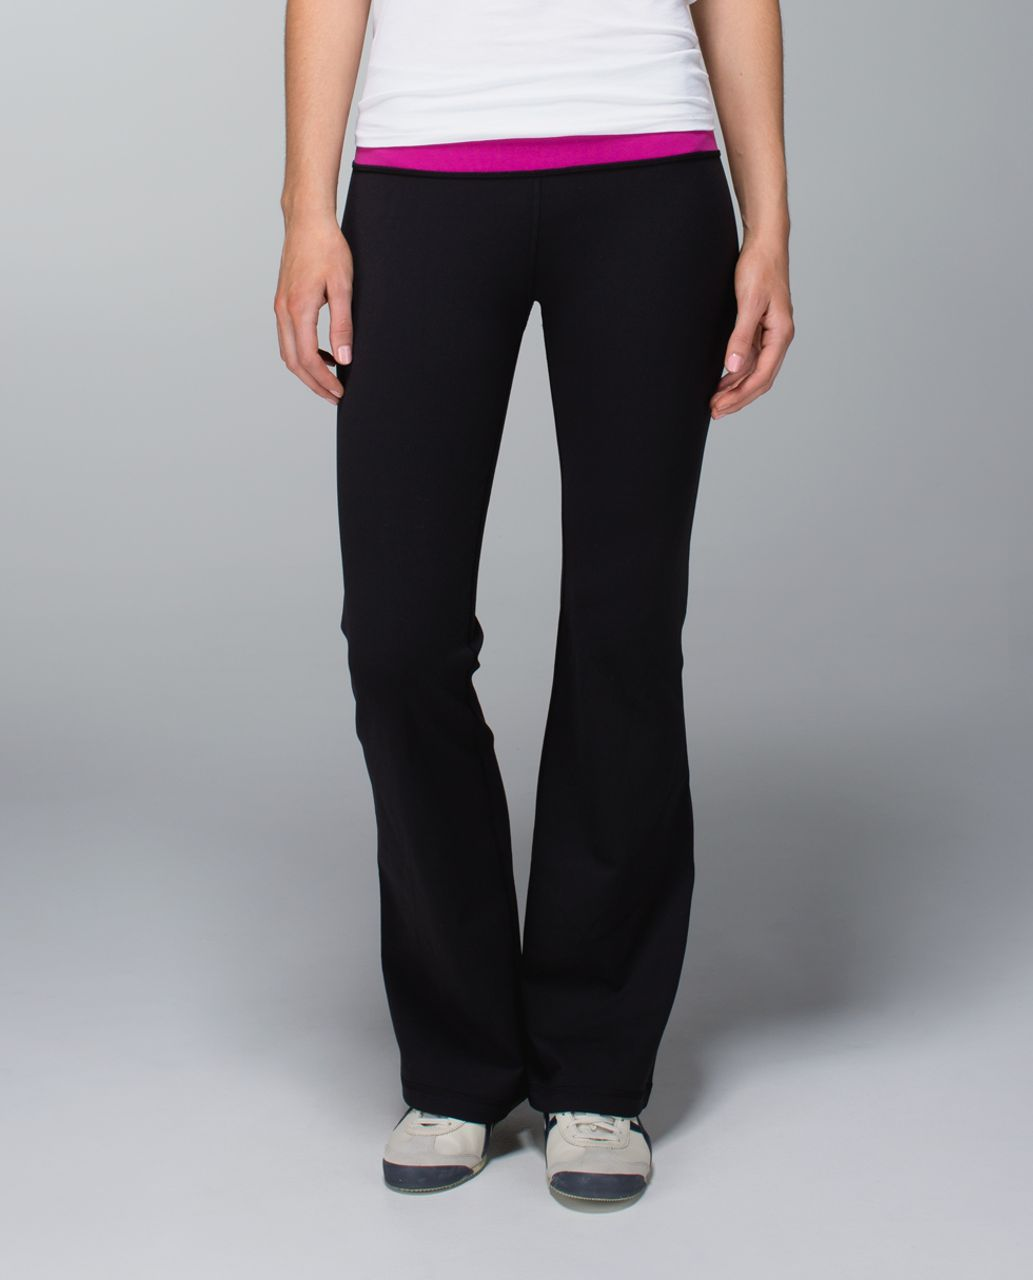 Lululemon Groove Pant (Regular) *Full-On Luon - Black /  White /  Raspberry